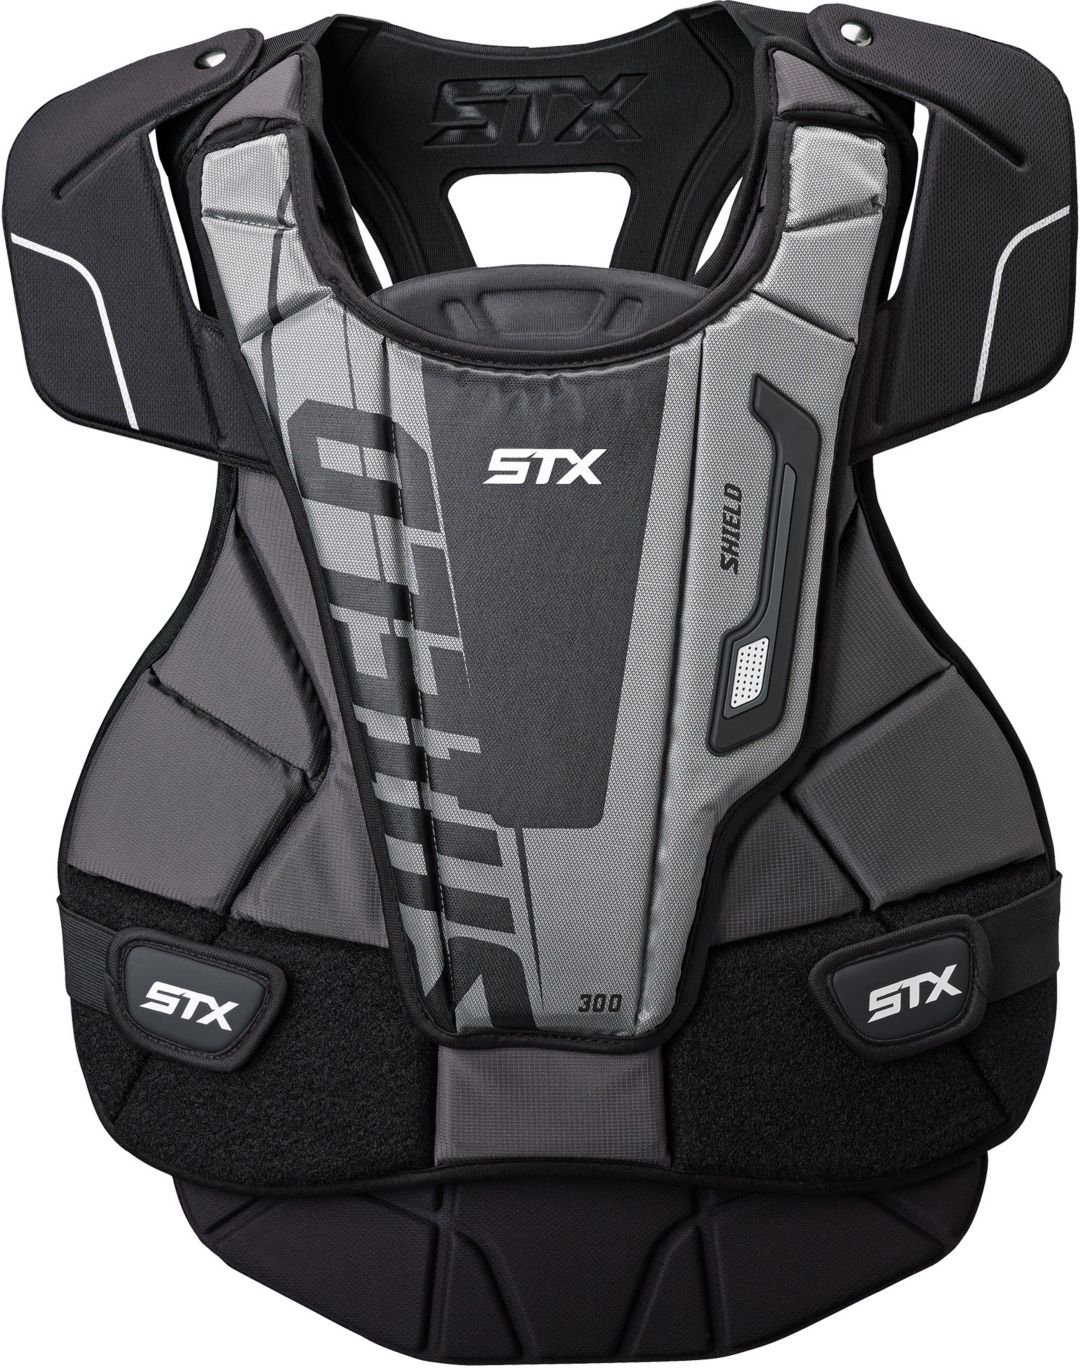 Stx Men S Shield 300 Lacrosse Goalie Chest Protector Dick S